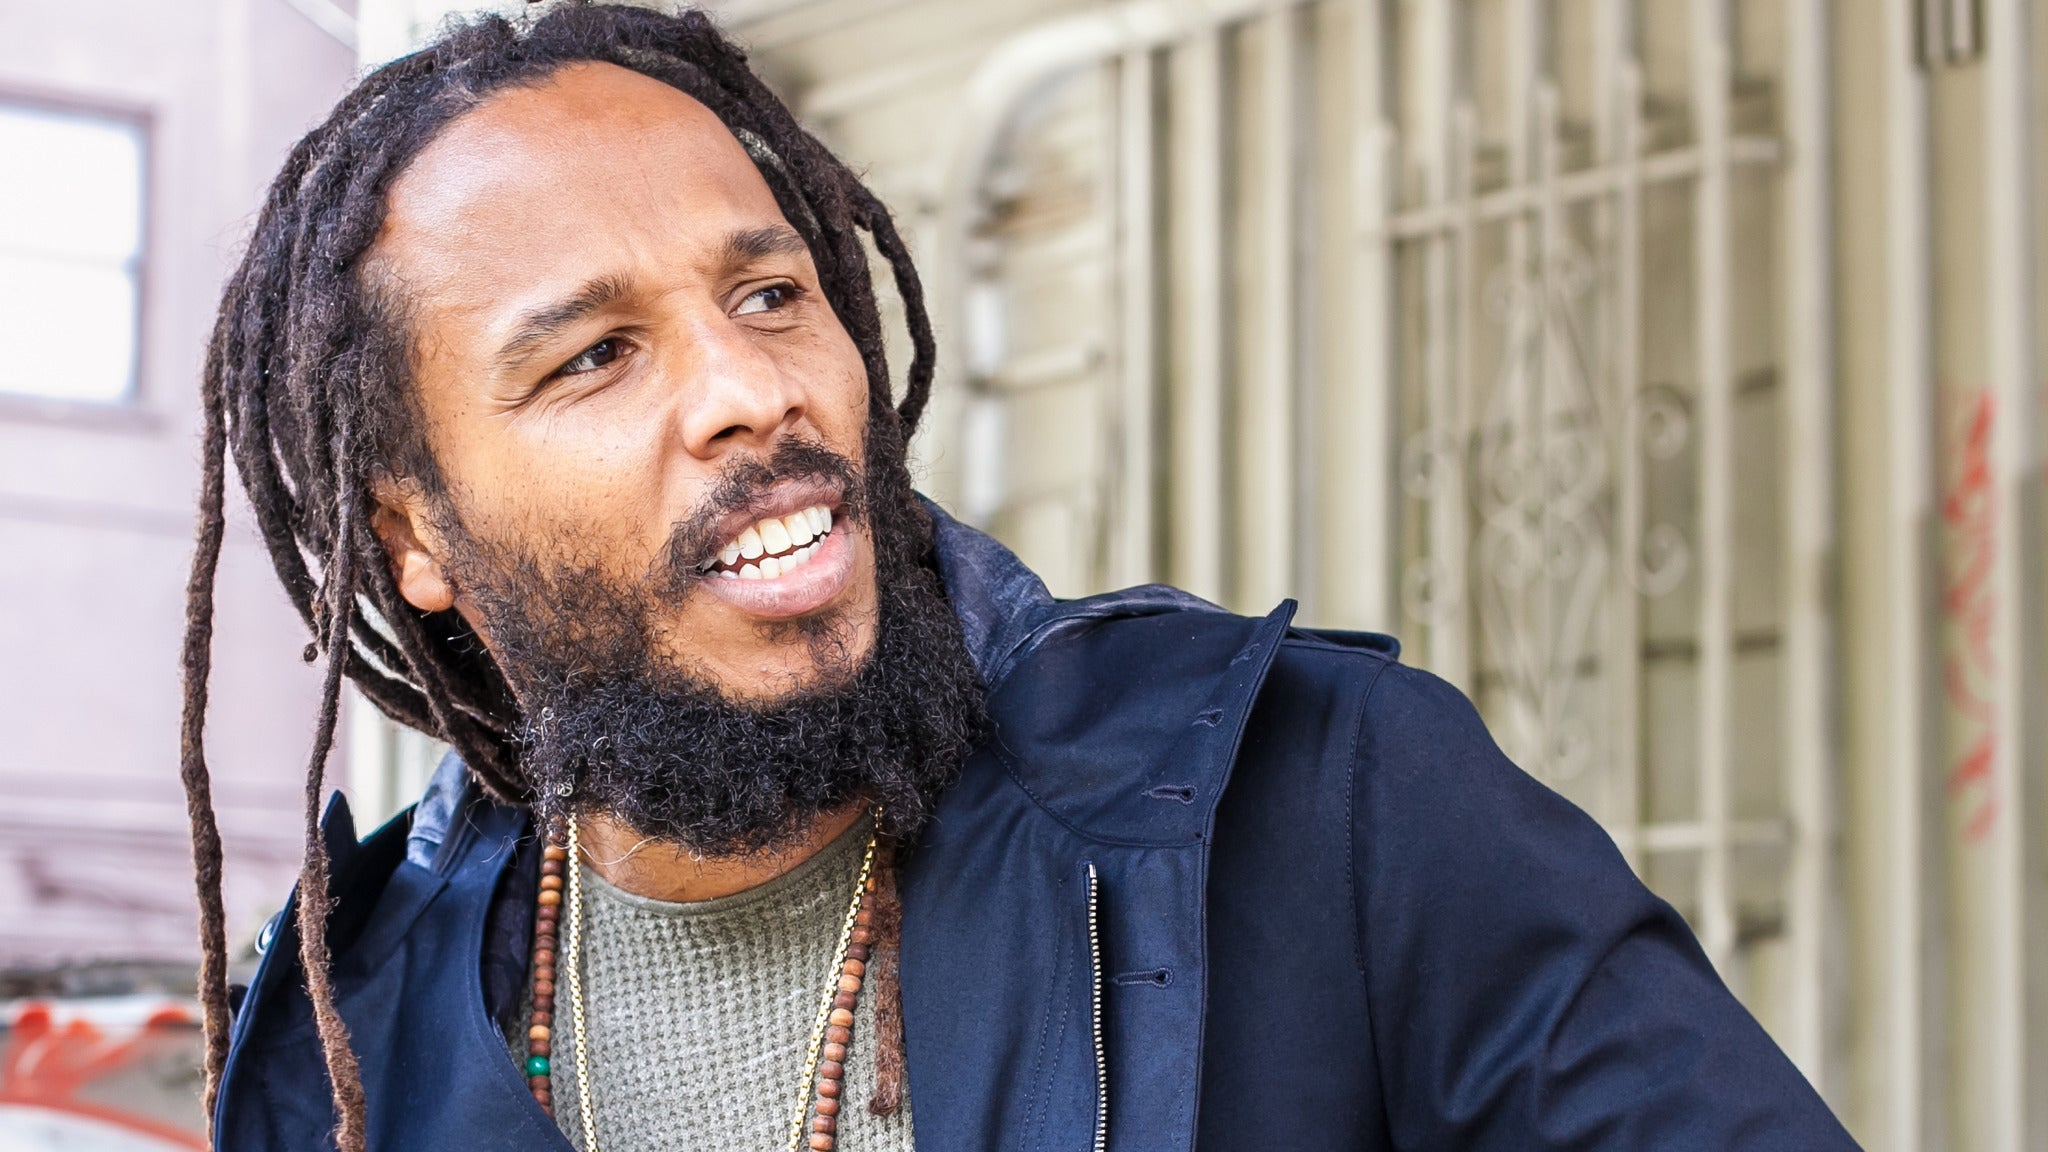 Ziggy Marley at Ridgefield Playhouse - Ridgefield, CT 06877